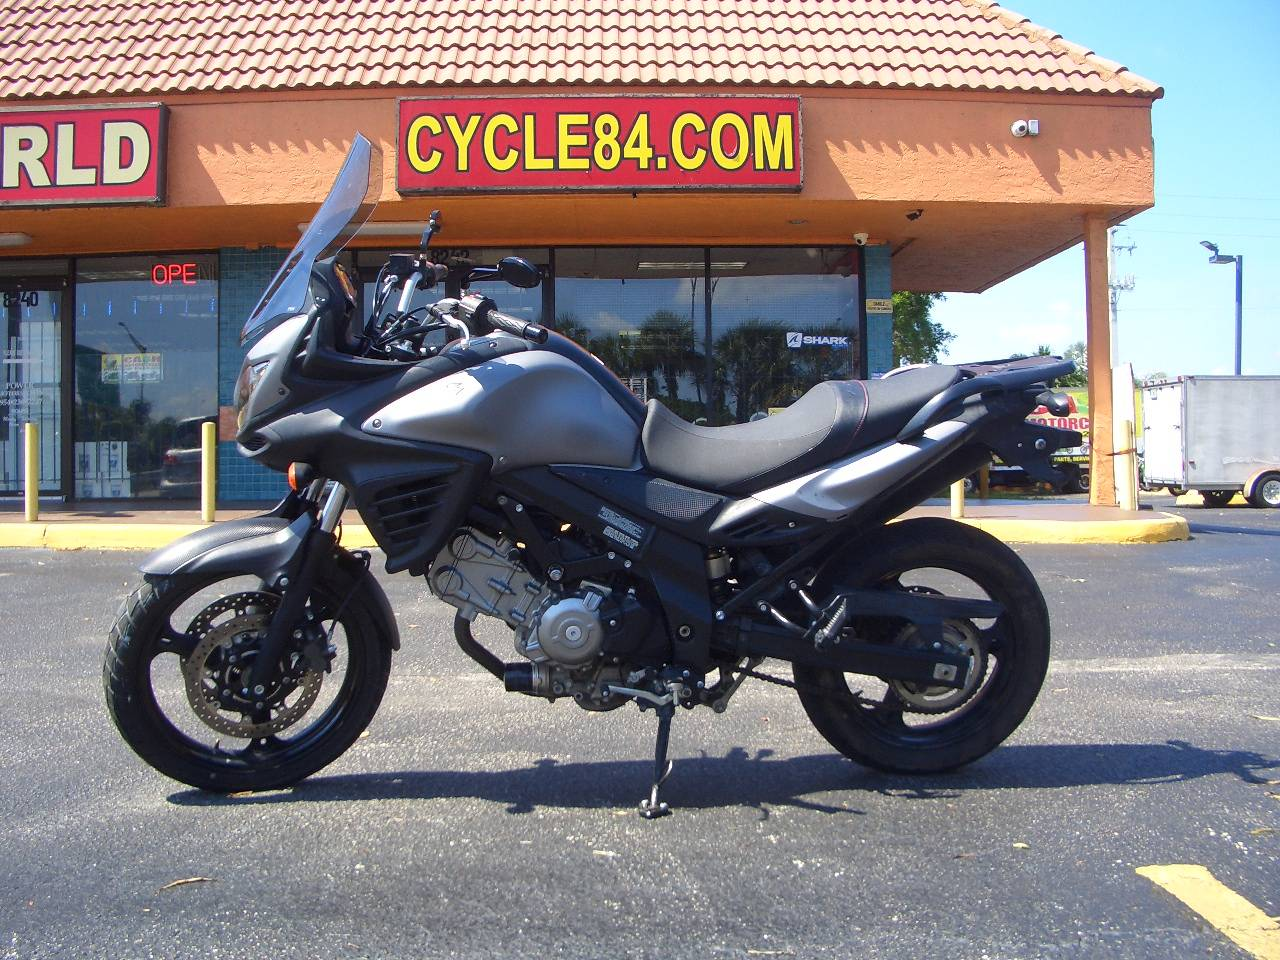 2015 Suzuki V-Strom 650 ABS Adventure in Fort Lauderdale, Florida - Photo 1